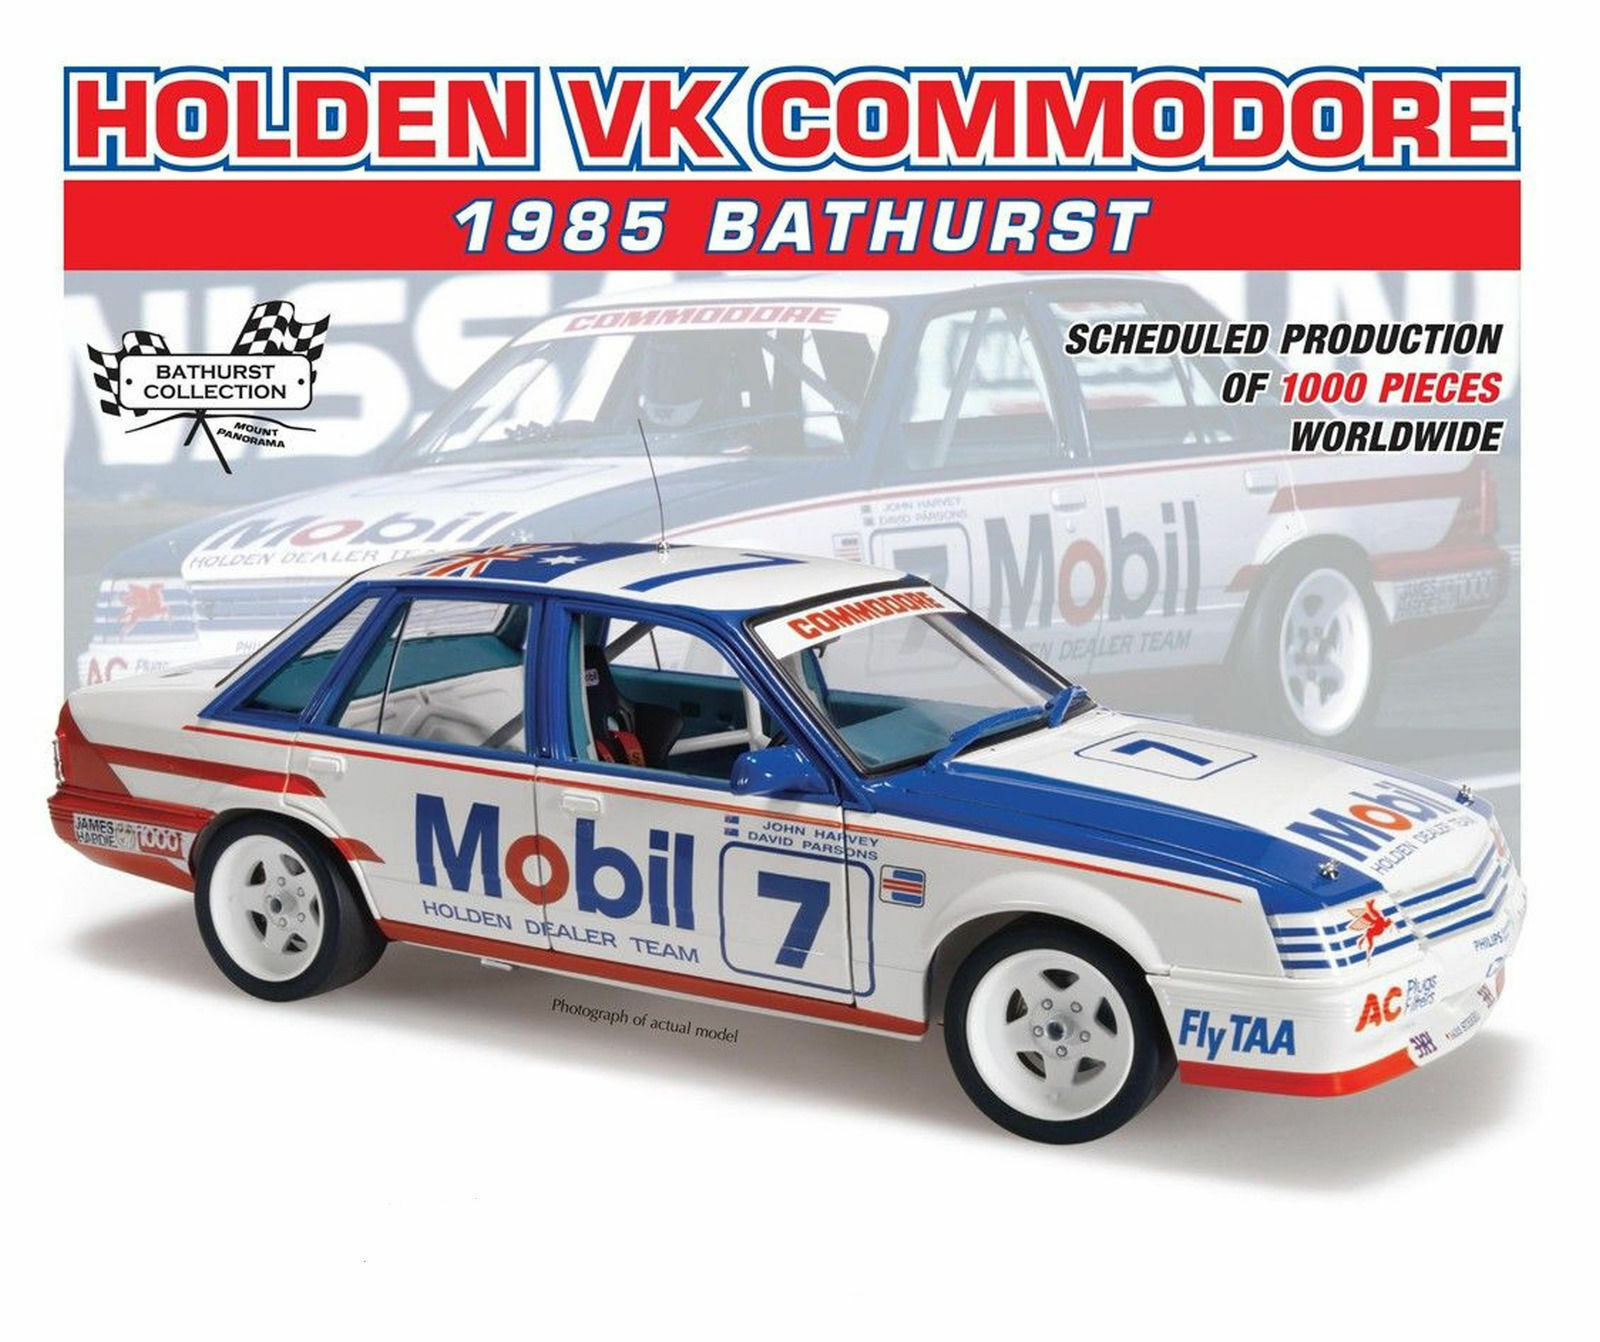 New Classic Carlectables 1 18 Holden VK Commodore 1985 Bathurst Harvey Parsons